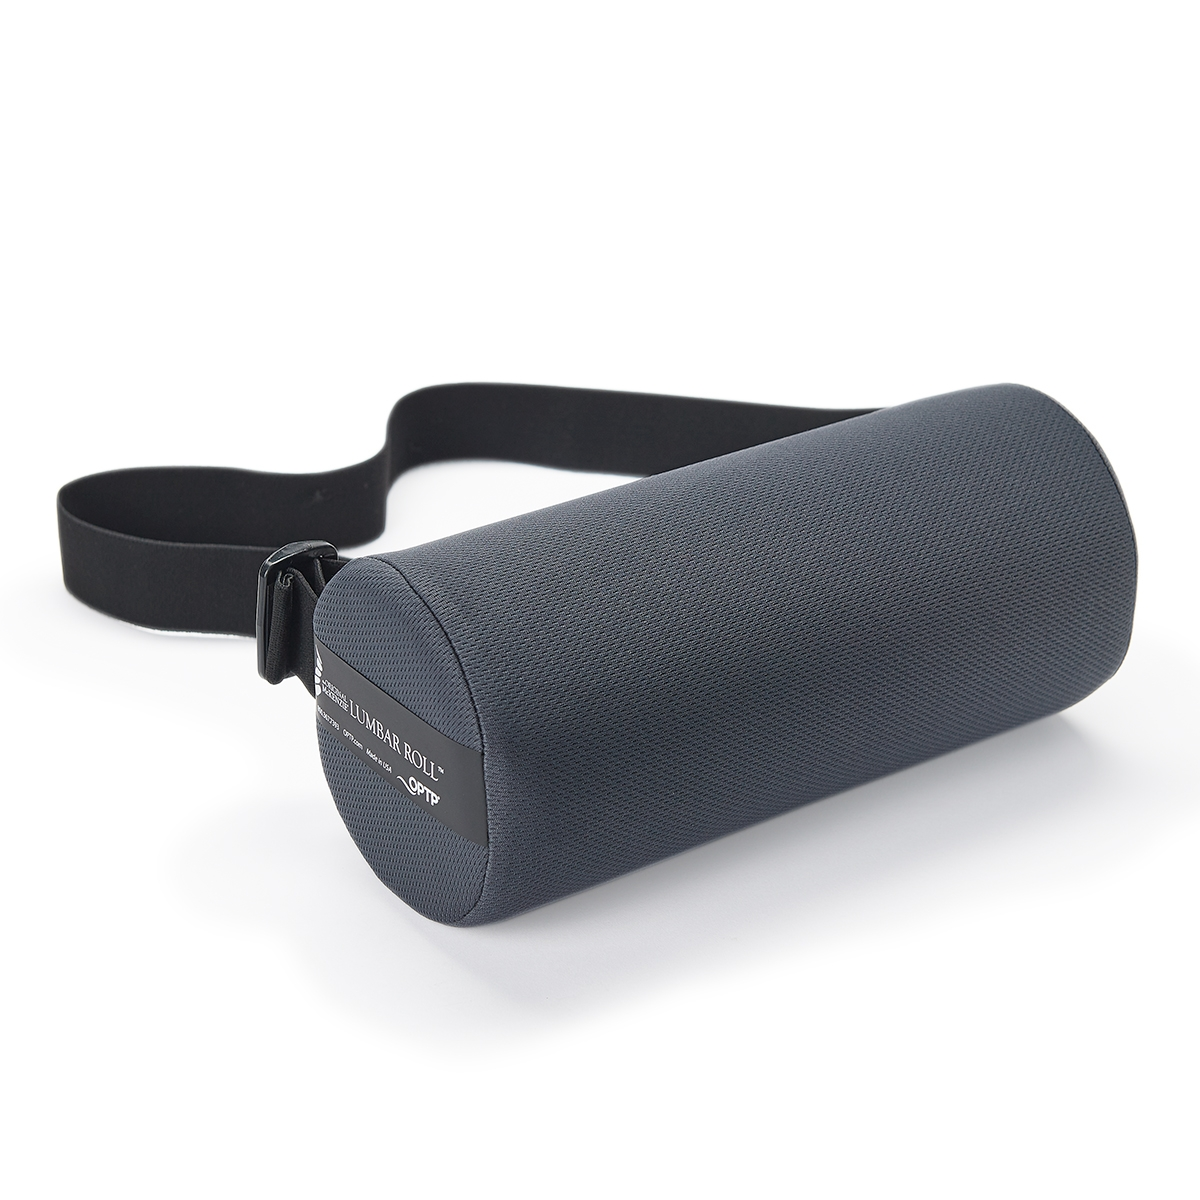 The Original McKenzie Lumbar Roll  Lumbar Support  OPTP